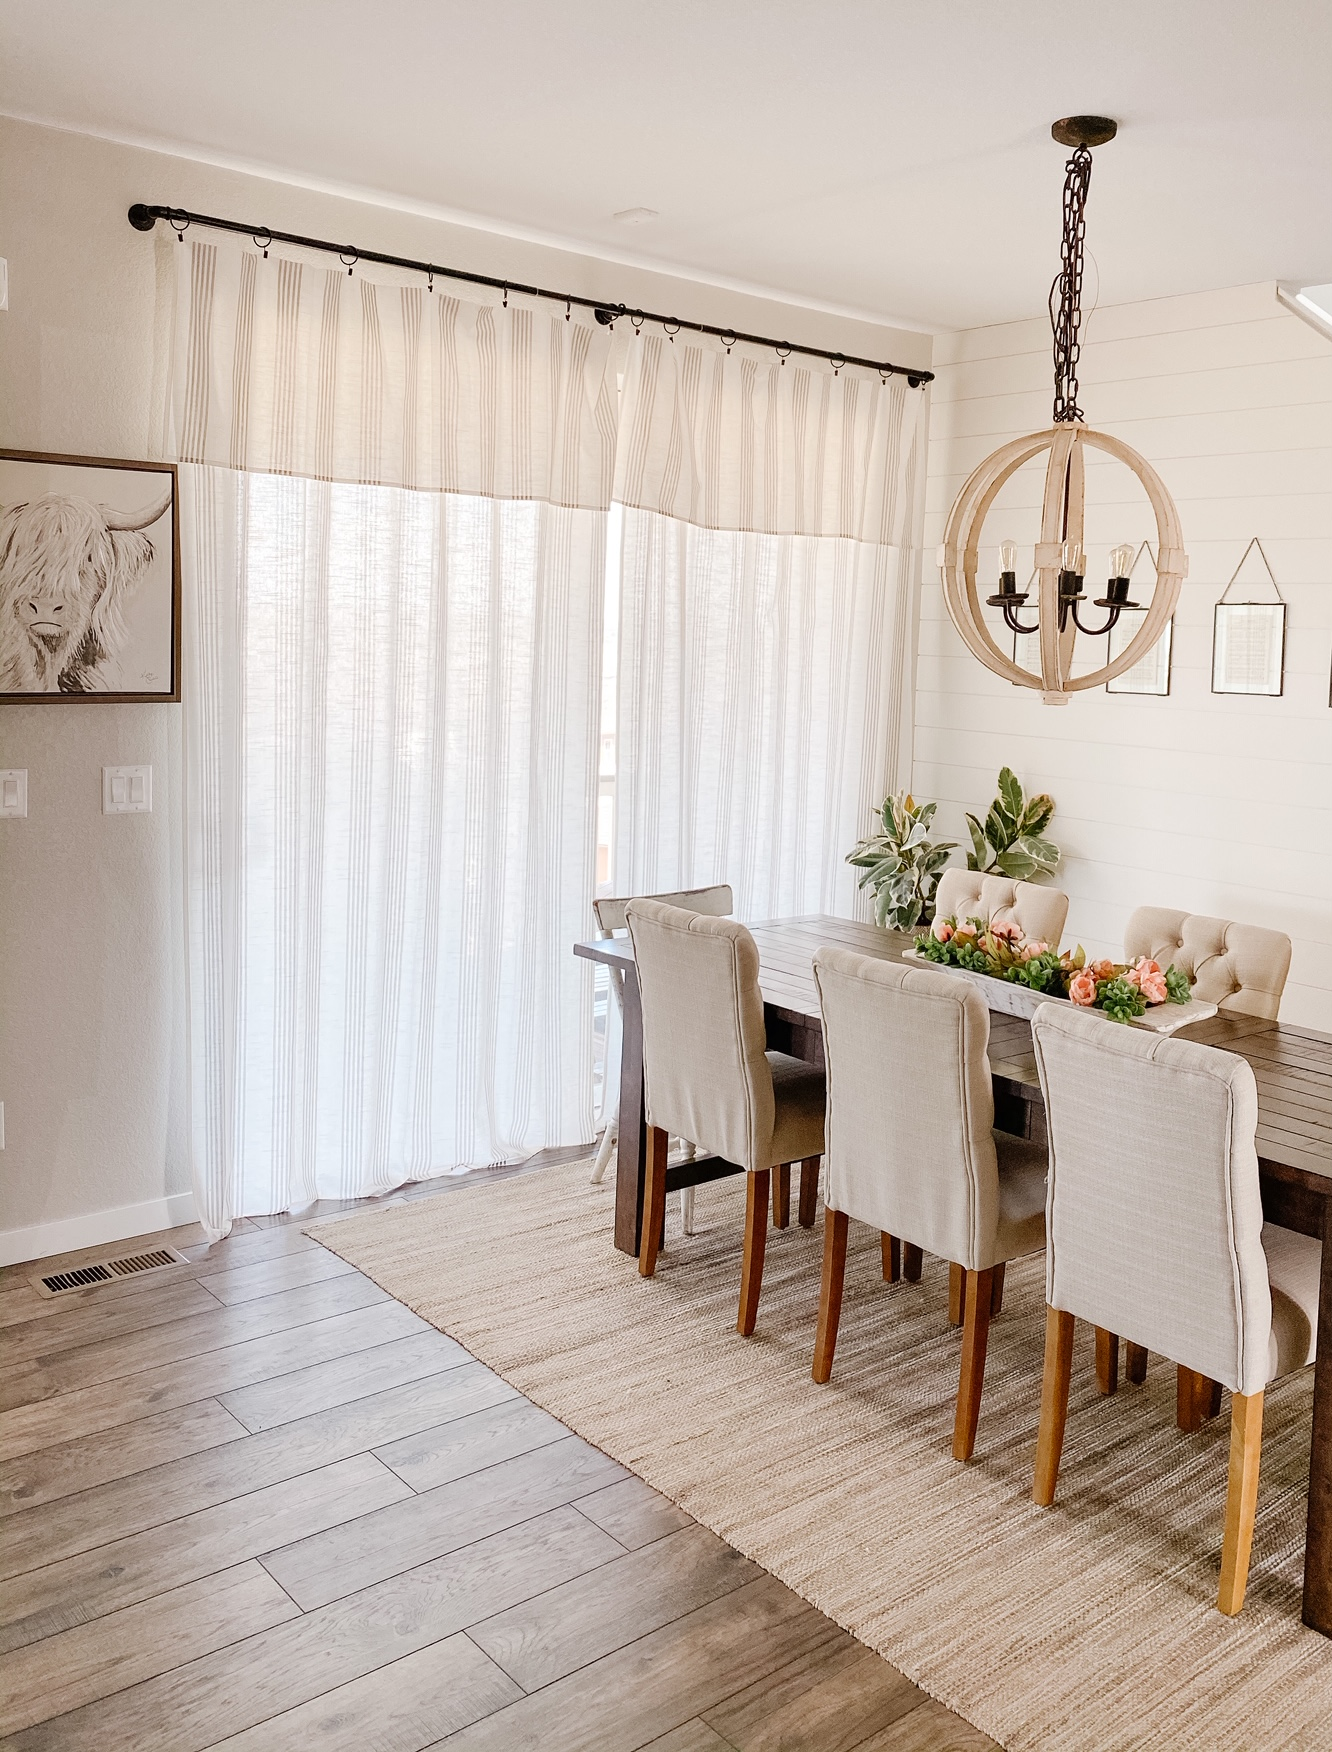 cheap tablecloths made into curtains. Simple home DIY project